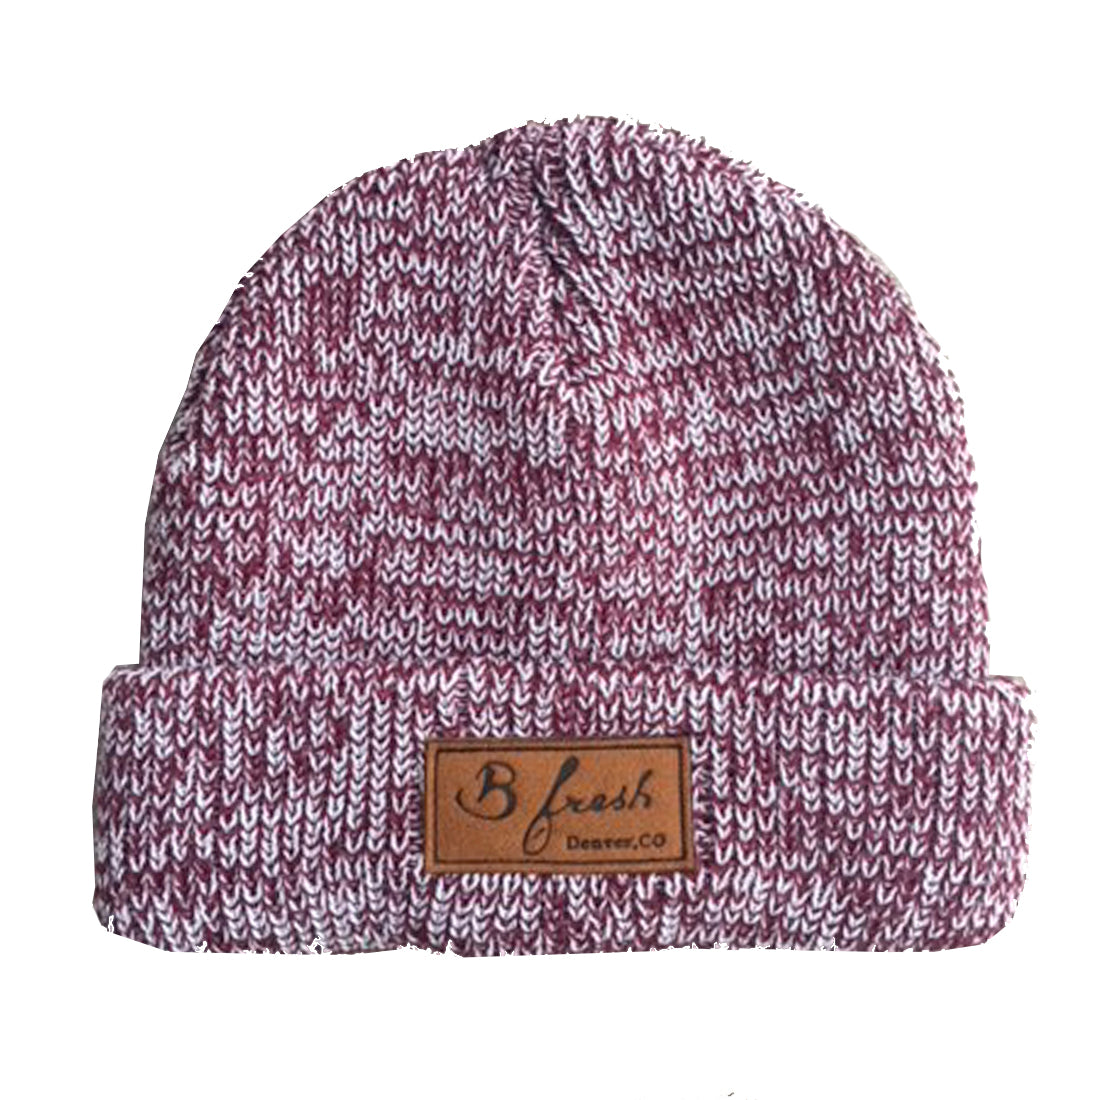 4156d25934719 The Mickey - Red Merino Wool Beanie - B Fresh